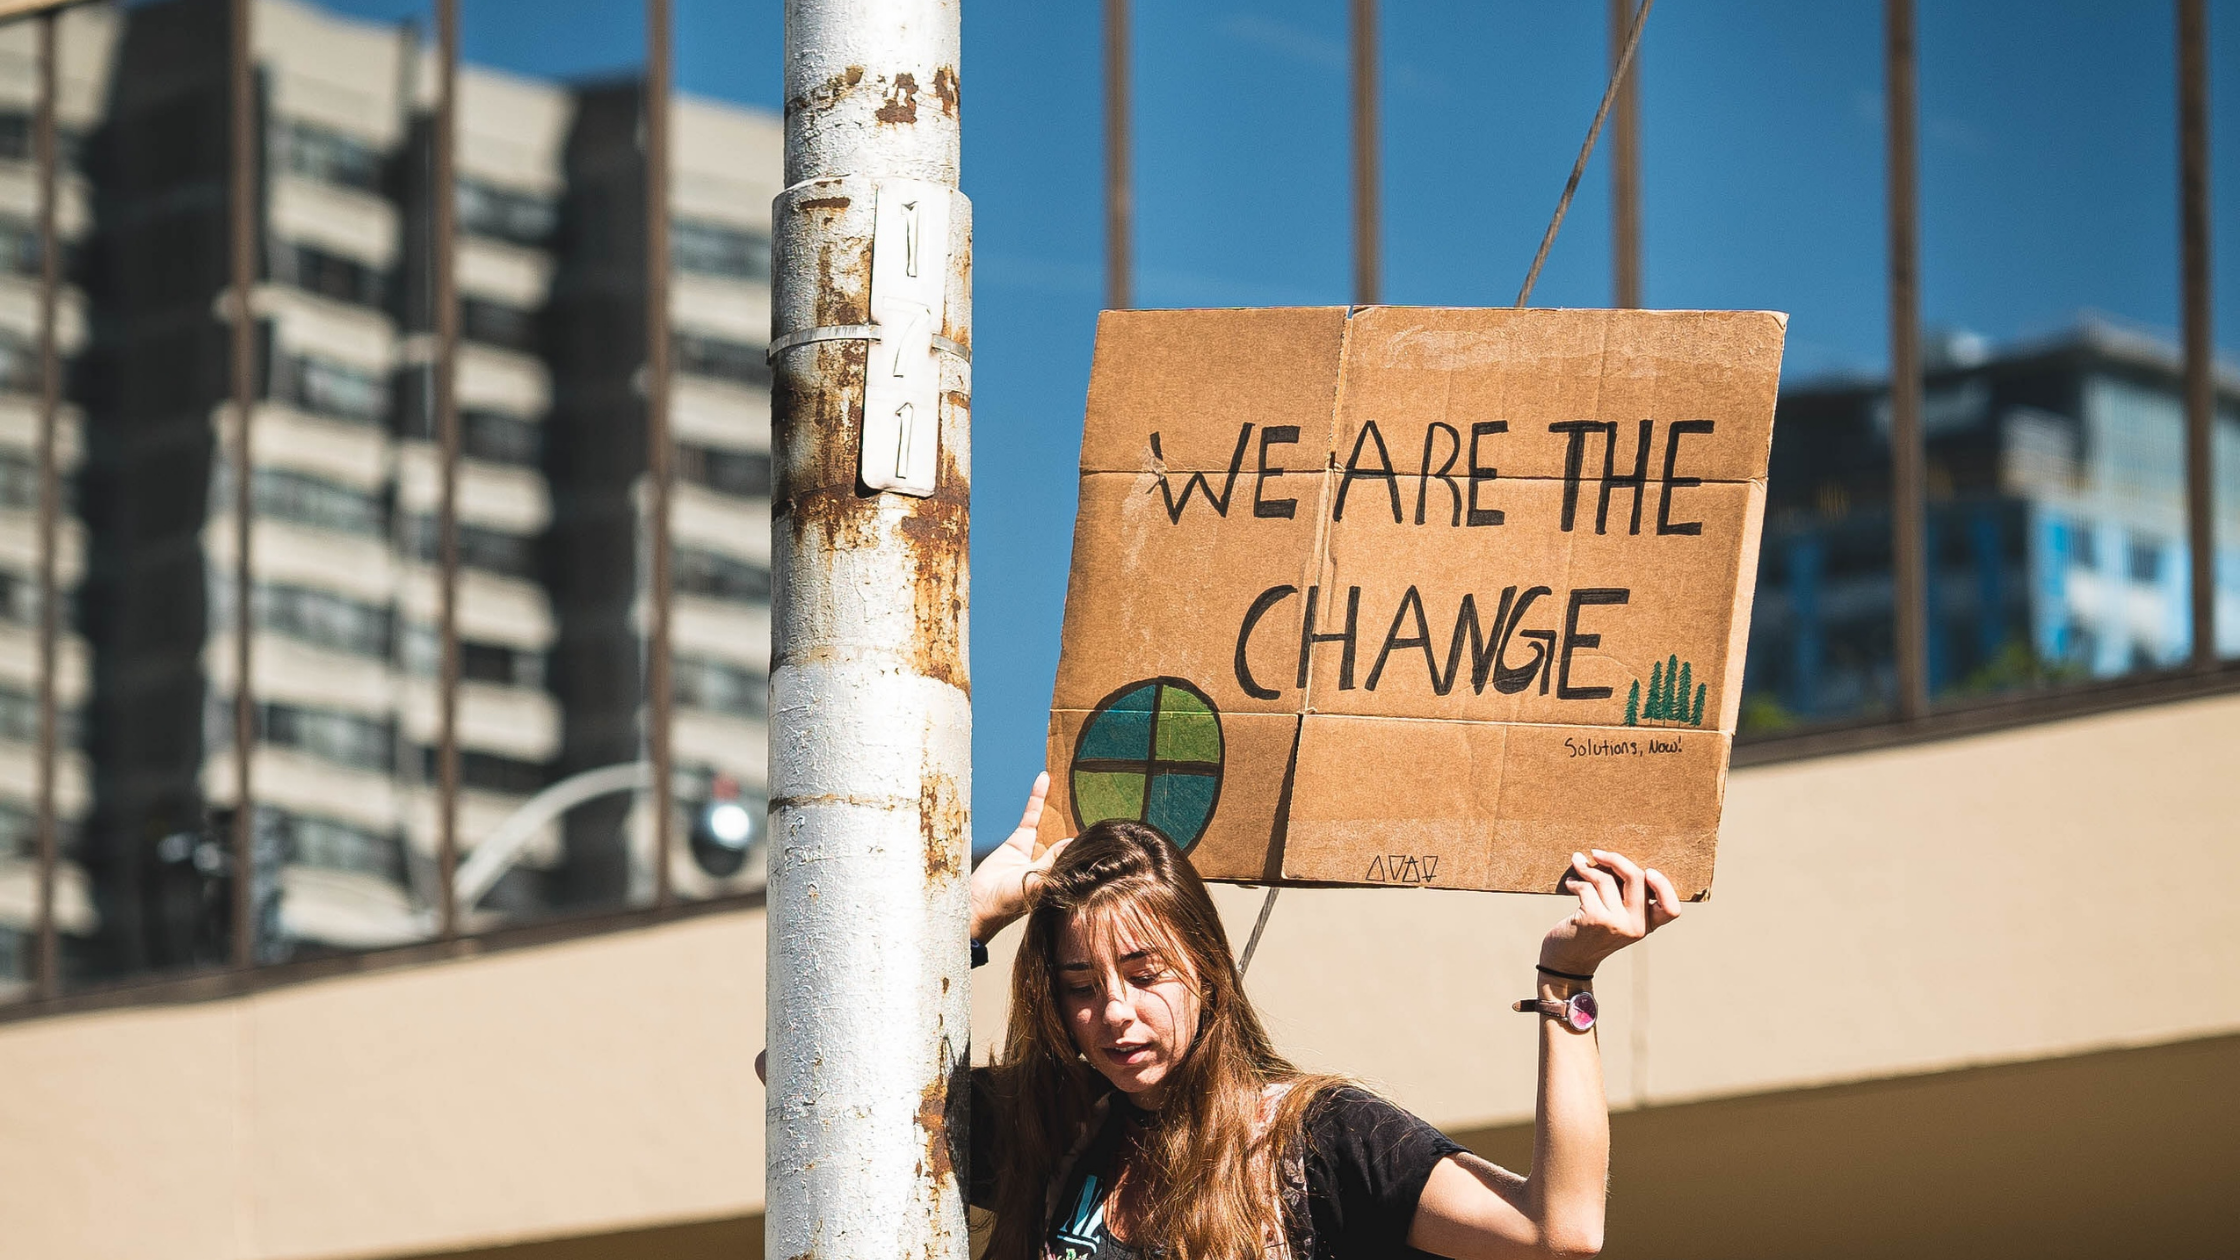 What can we do? Looking ahead to COP26